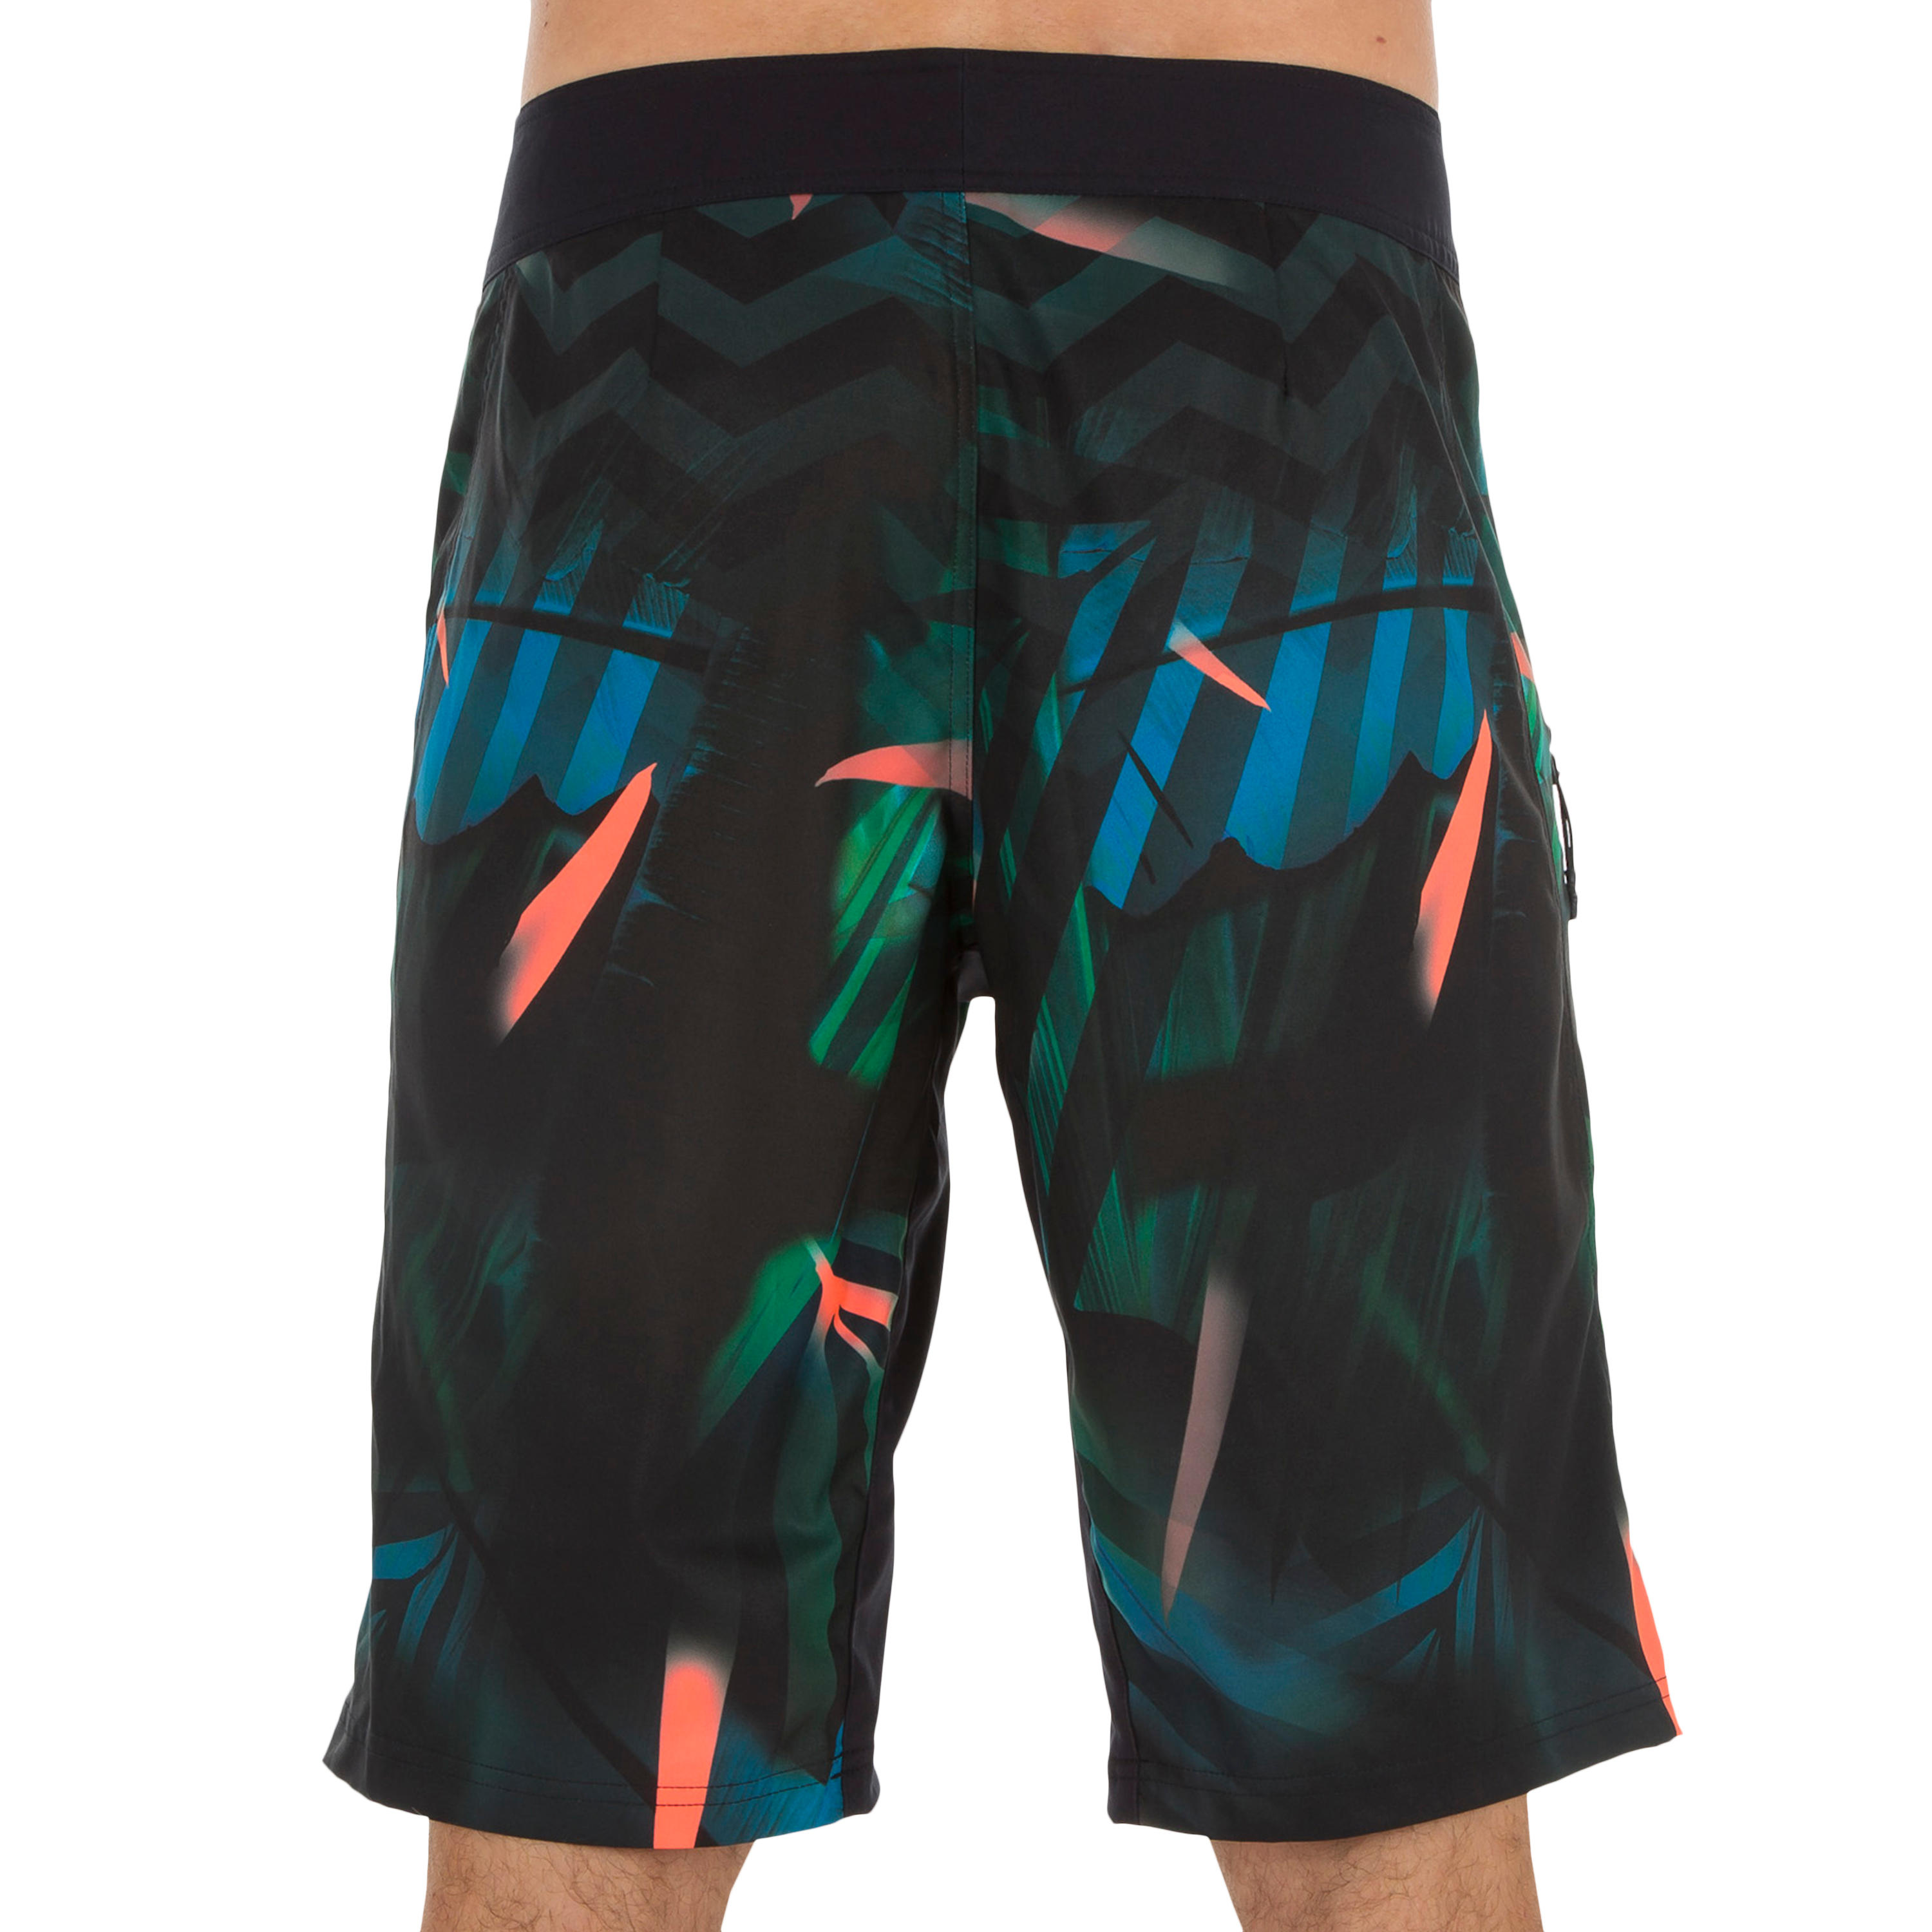 500 long surfing boardshorts Jungle green